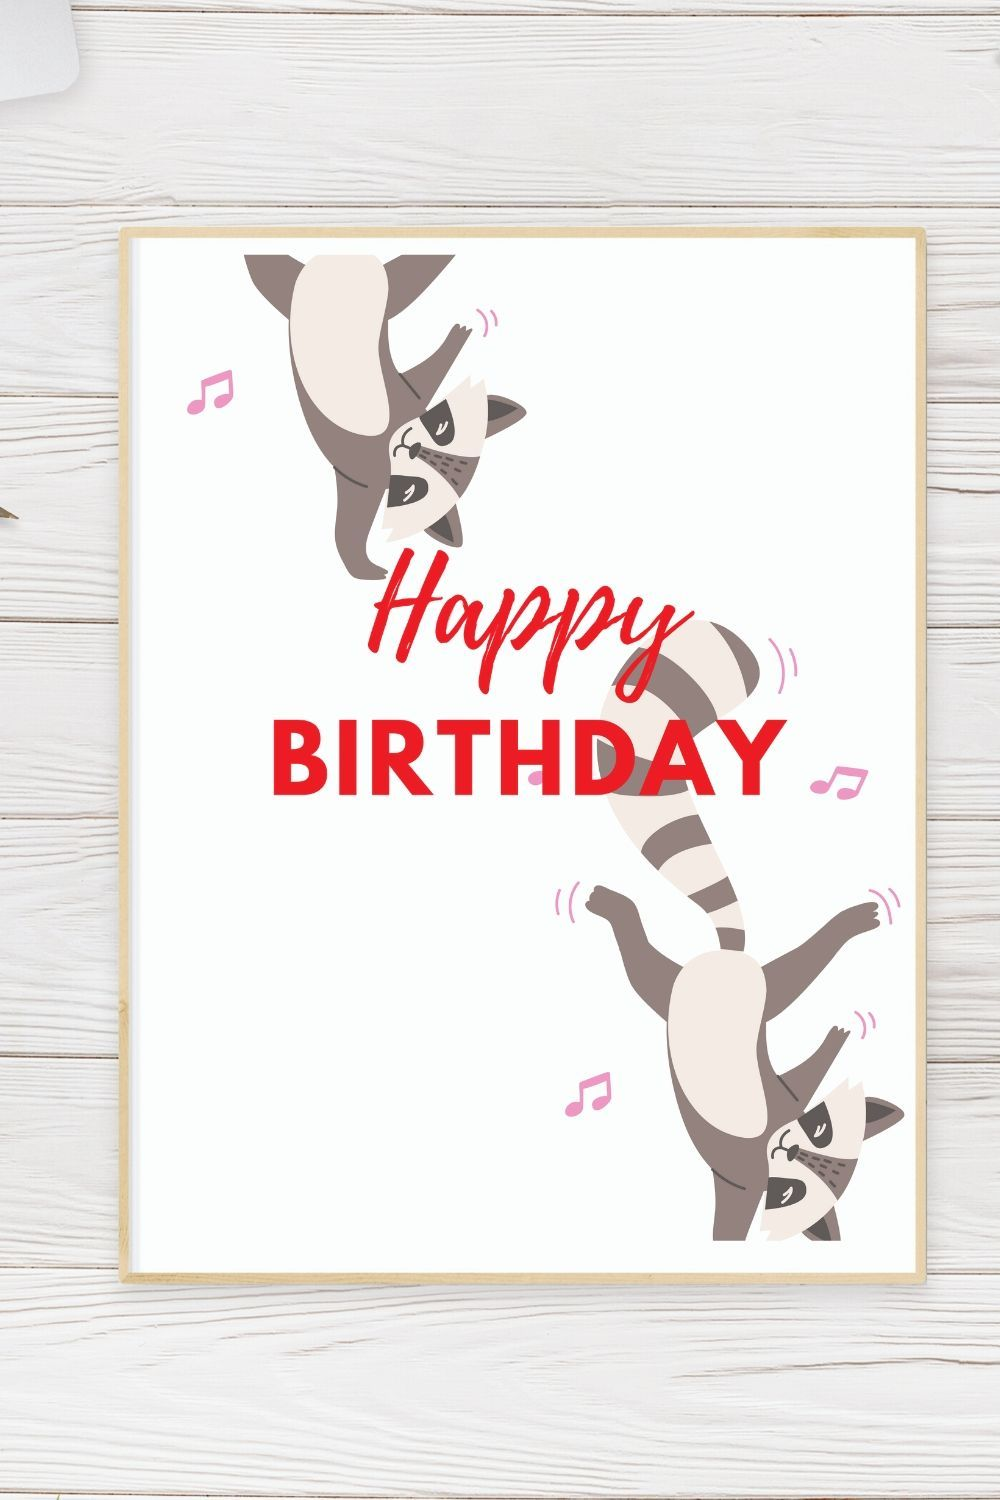 Print it from home and send it by mail or send i directly in a email.   #Digitaldownload #Printable #Print #Birthdaycard #Kid #Child